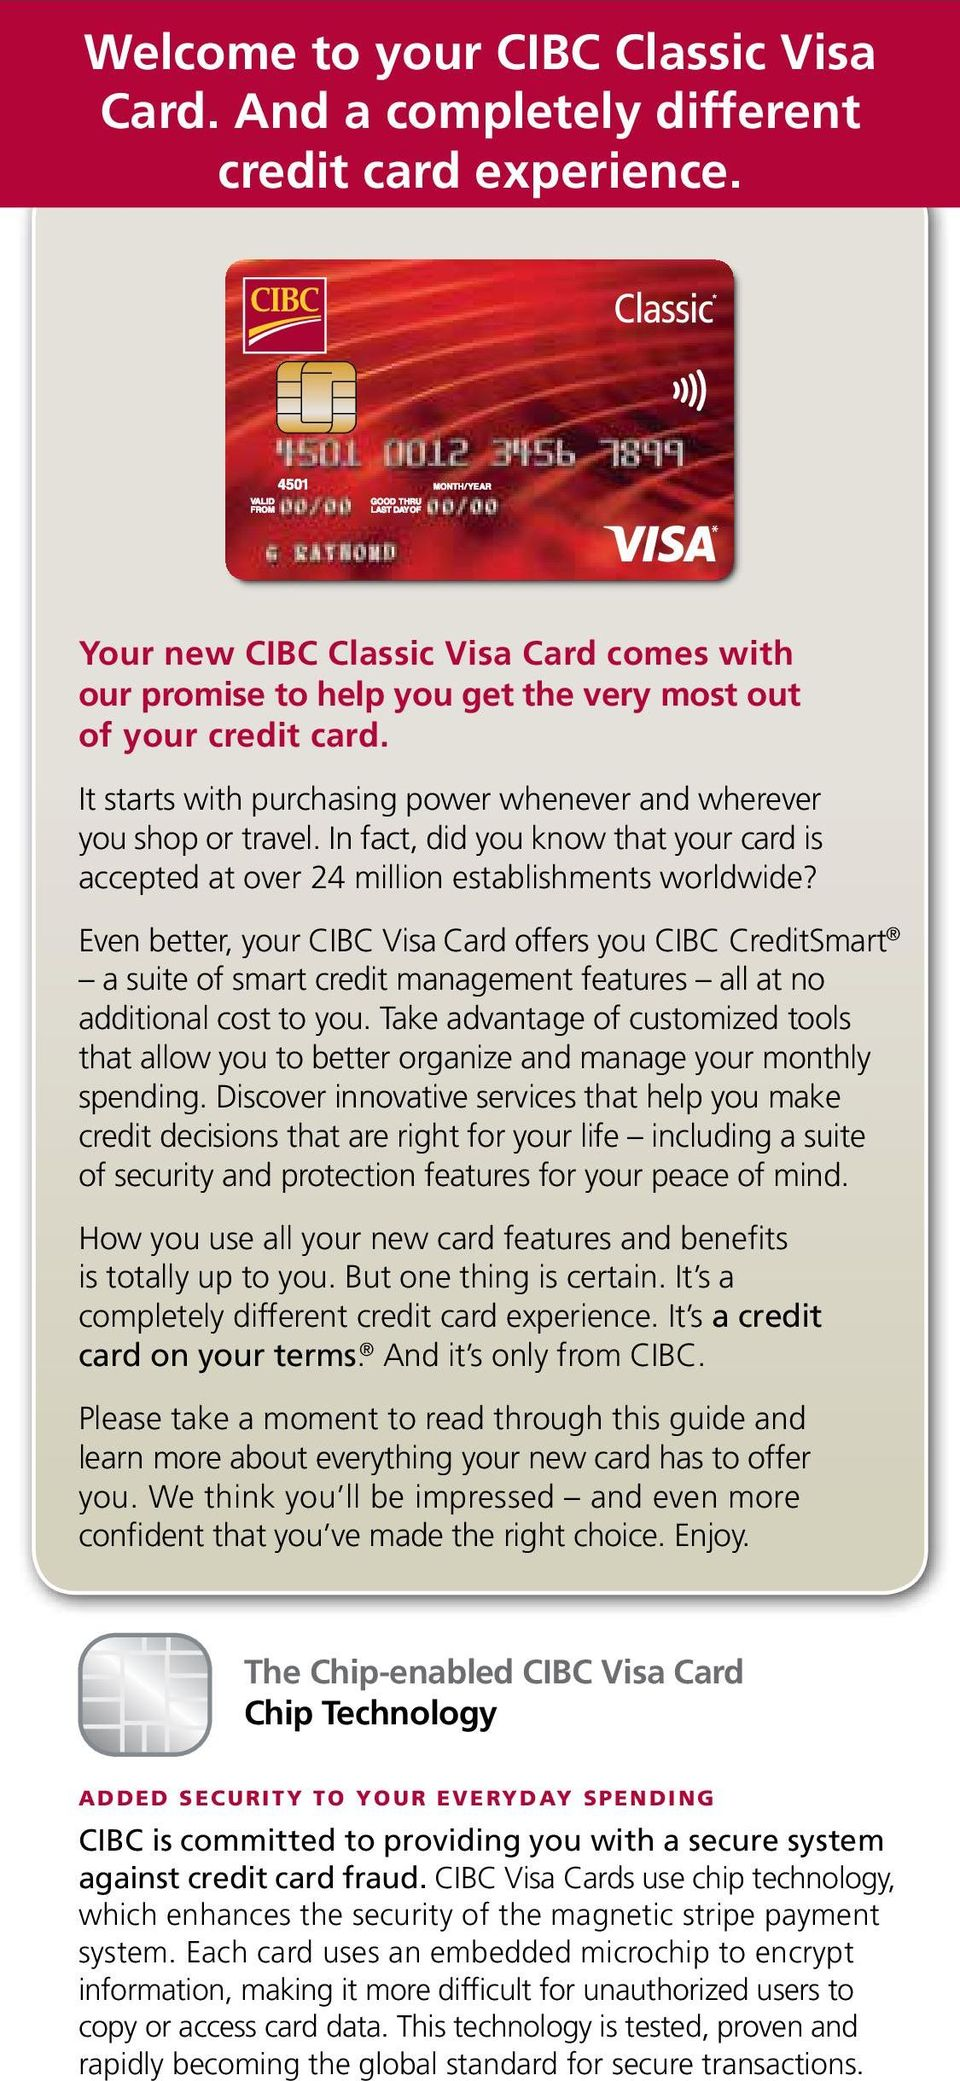 Even better, your CIBC Visa Card offers you CIBC CreditSmart a suite of smart credit management features all at no additional cost to you.